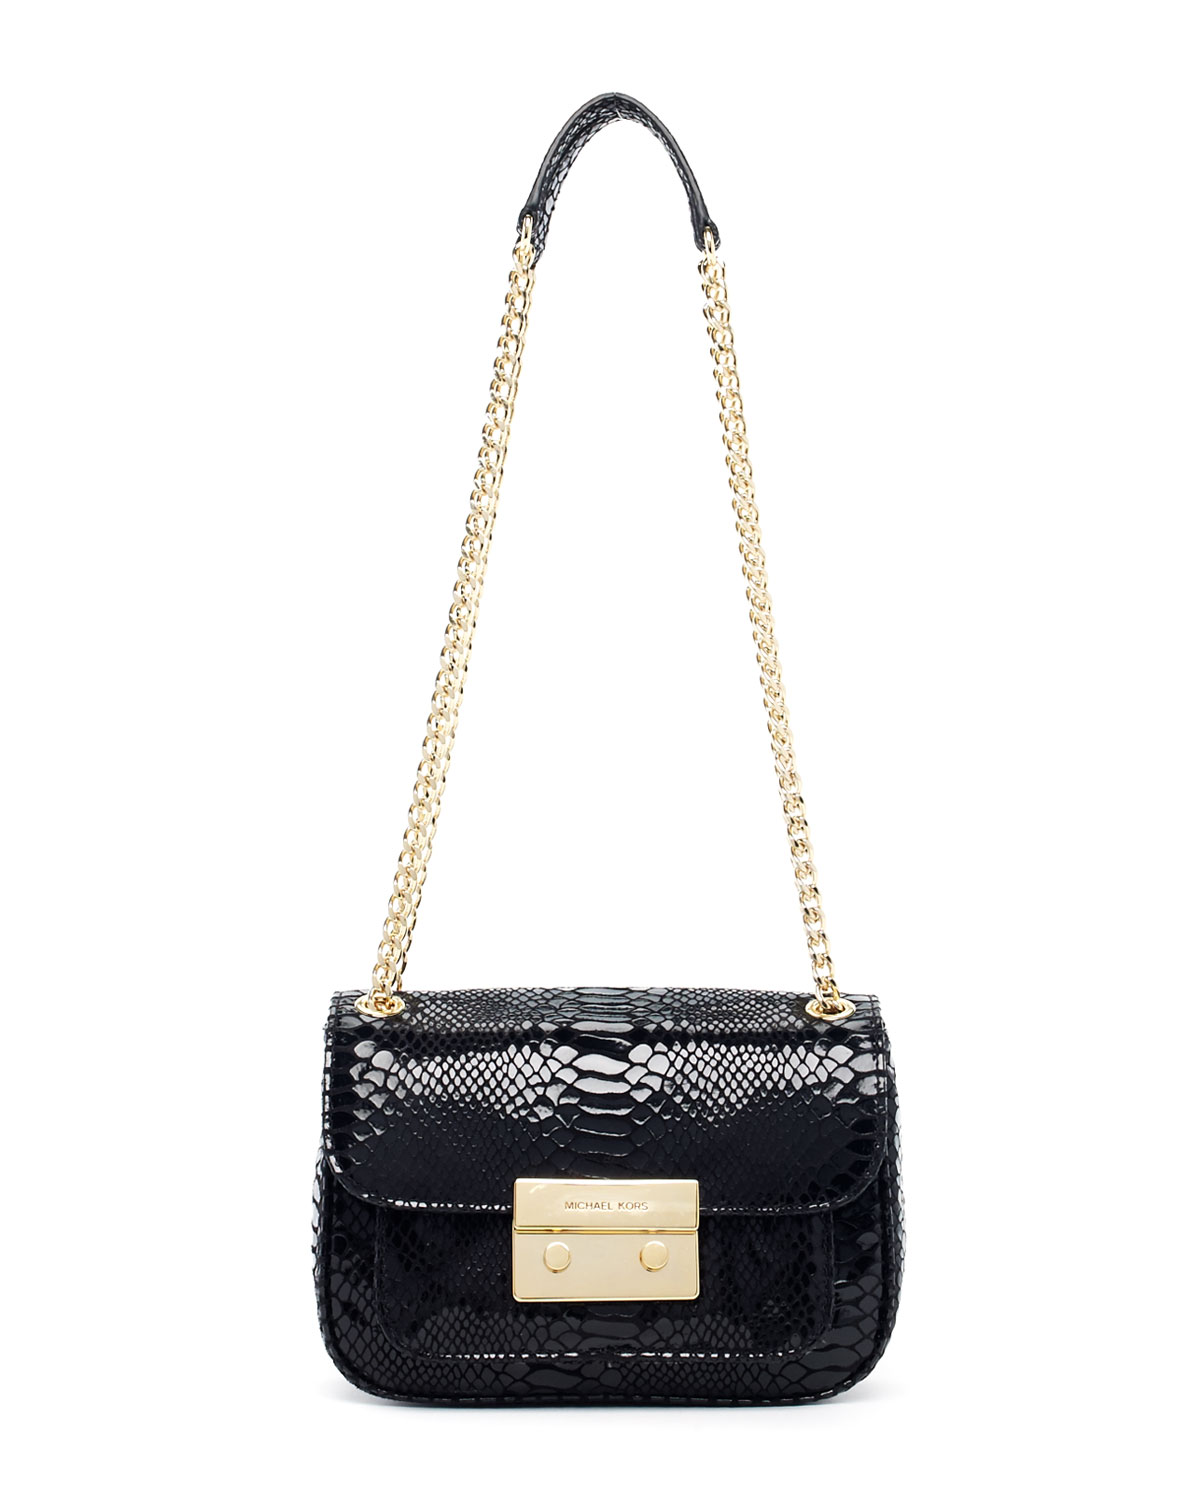 495a70aaf0d7 Michael Kors Sloan Small Pythonembossed Shoulder Bag in Black - Lyst